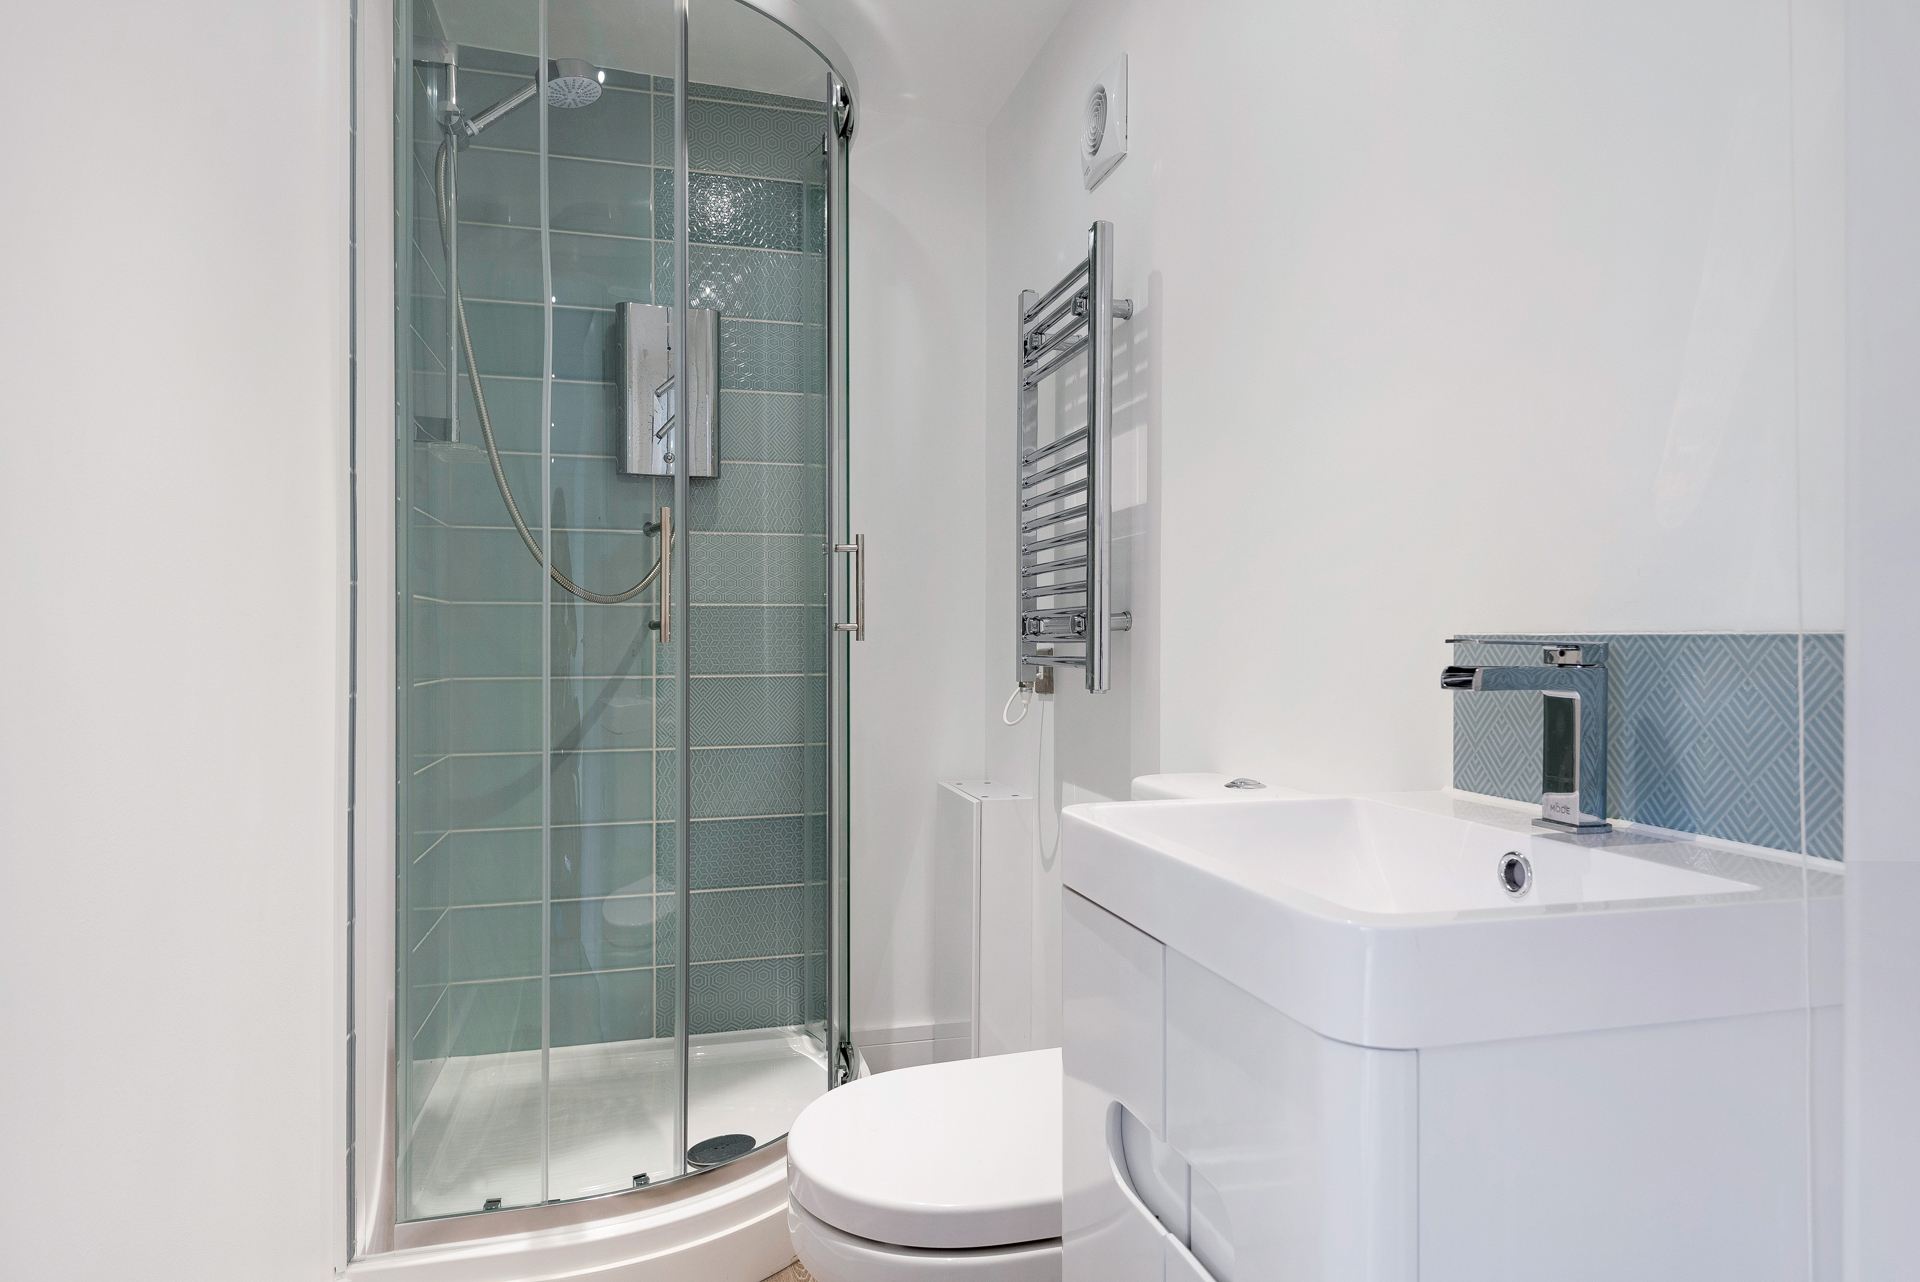 Garden room ensuite bathrooms in Essex.